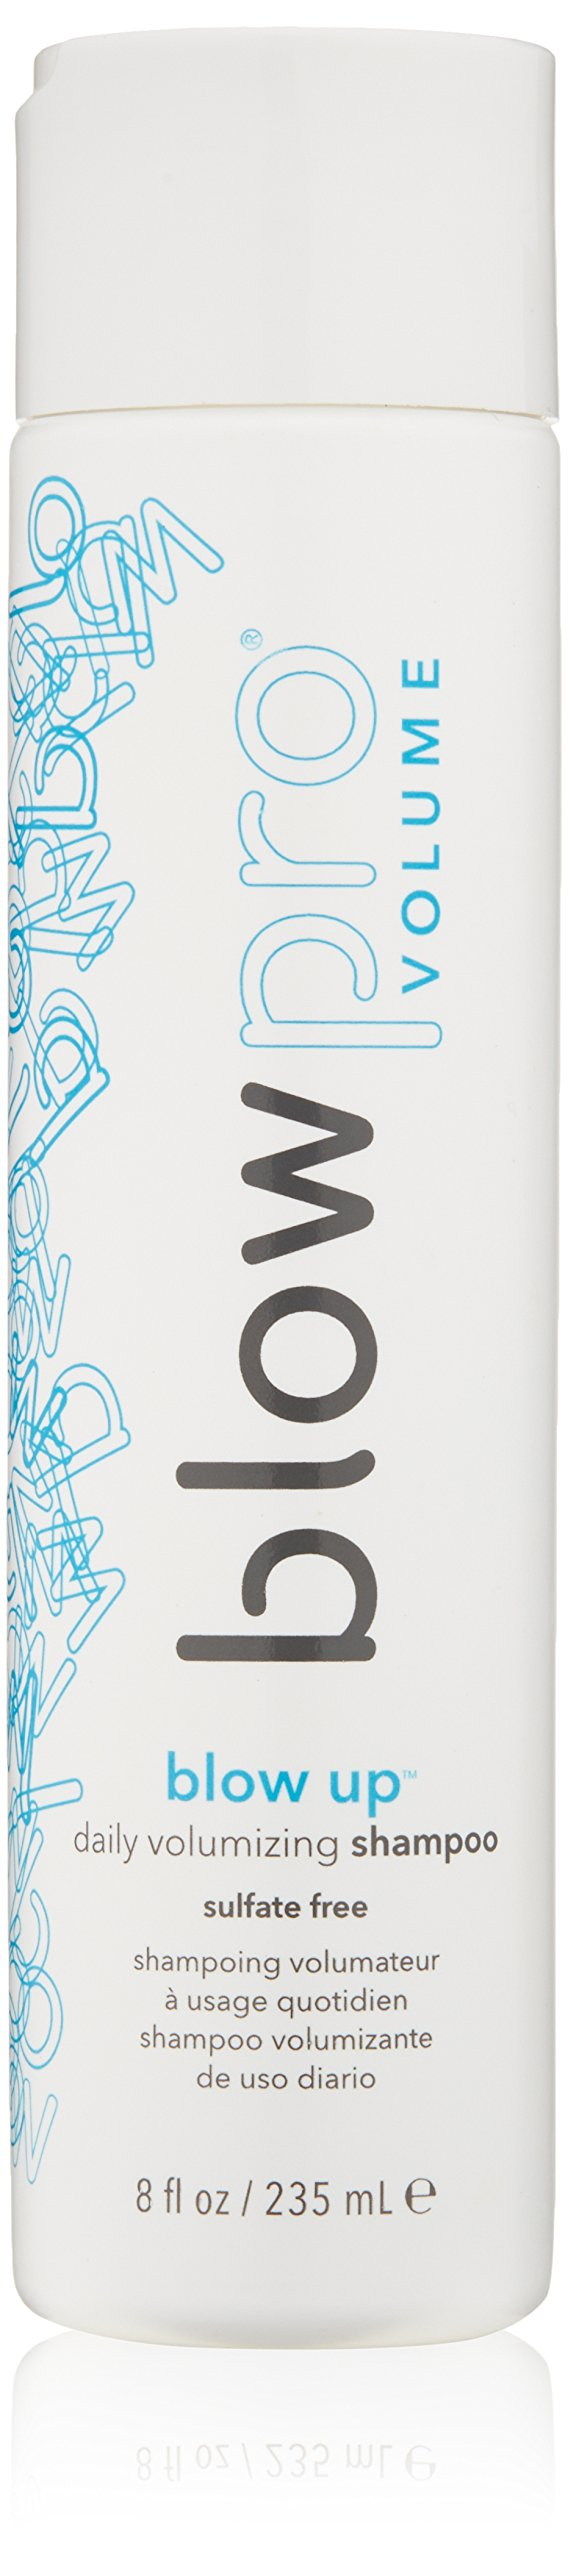 blowpro Blow Up Daily Volumizing Shampoo